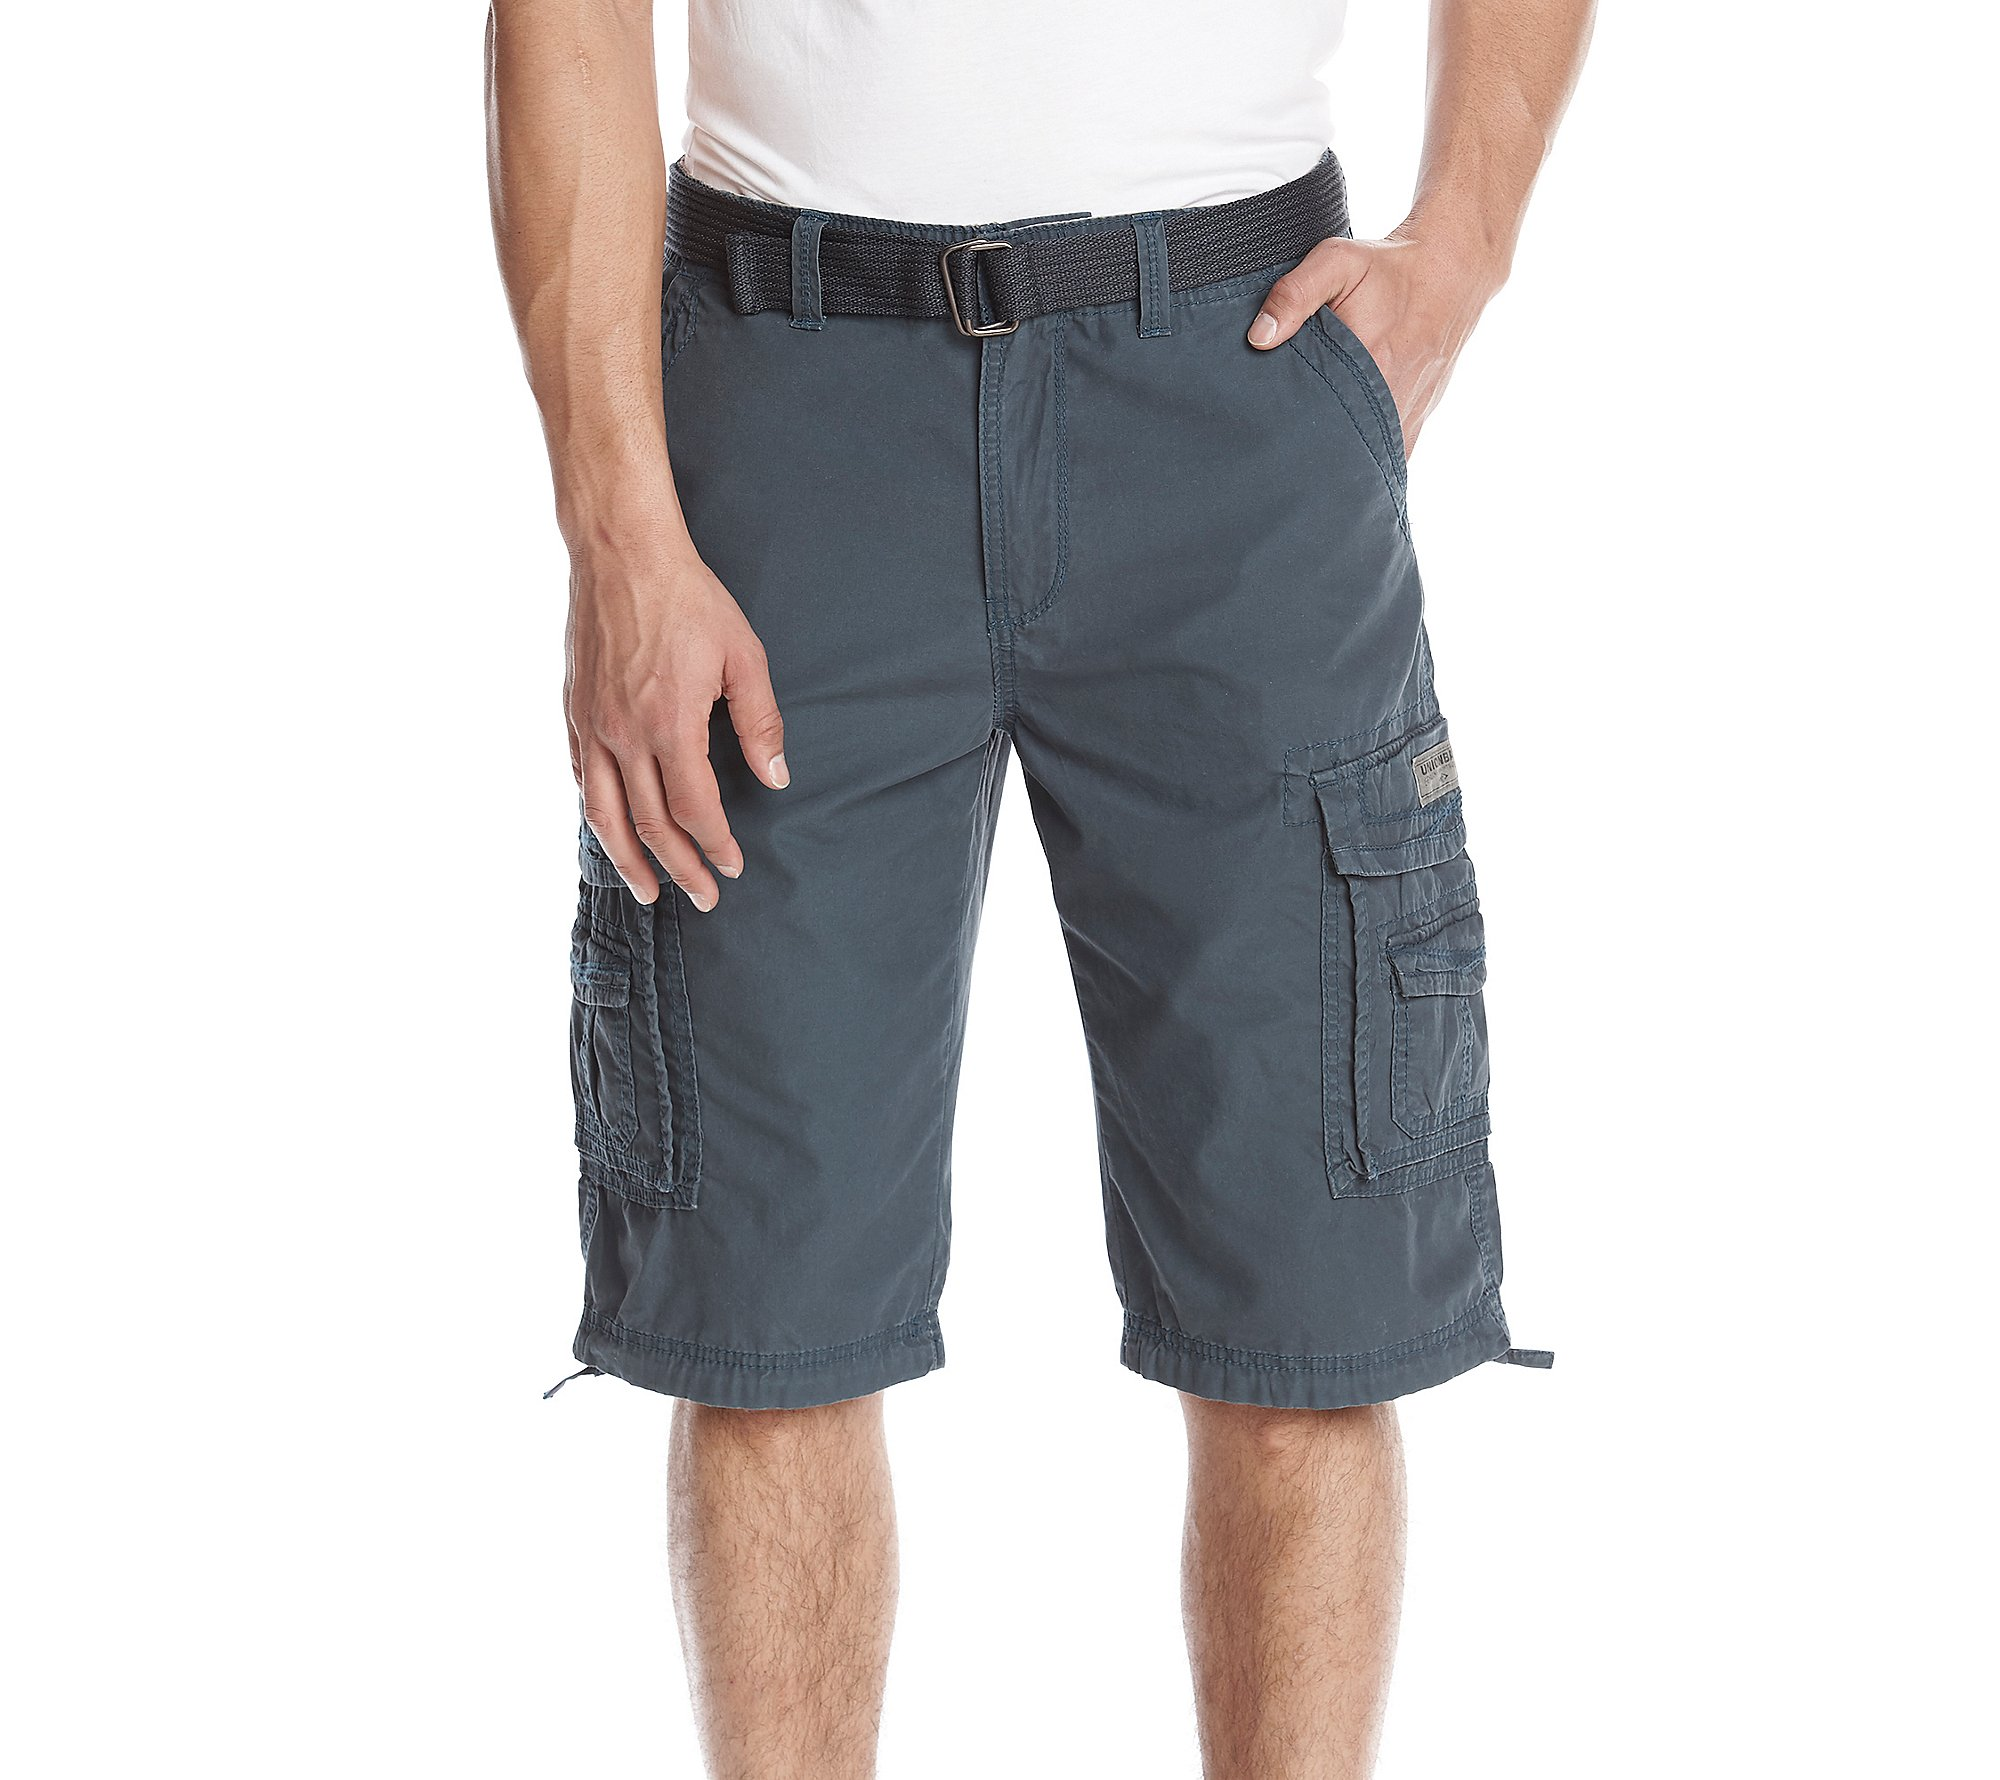 UNIONBAY Men's Cordova Belted Messenger Cargo Short - Reg and Big and Tall Sizes, Grenade, 40